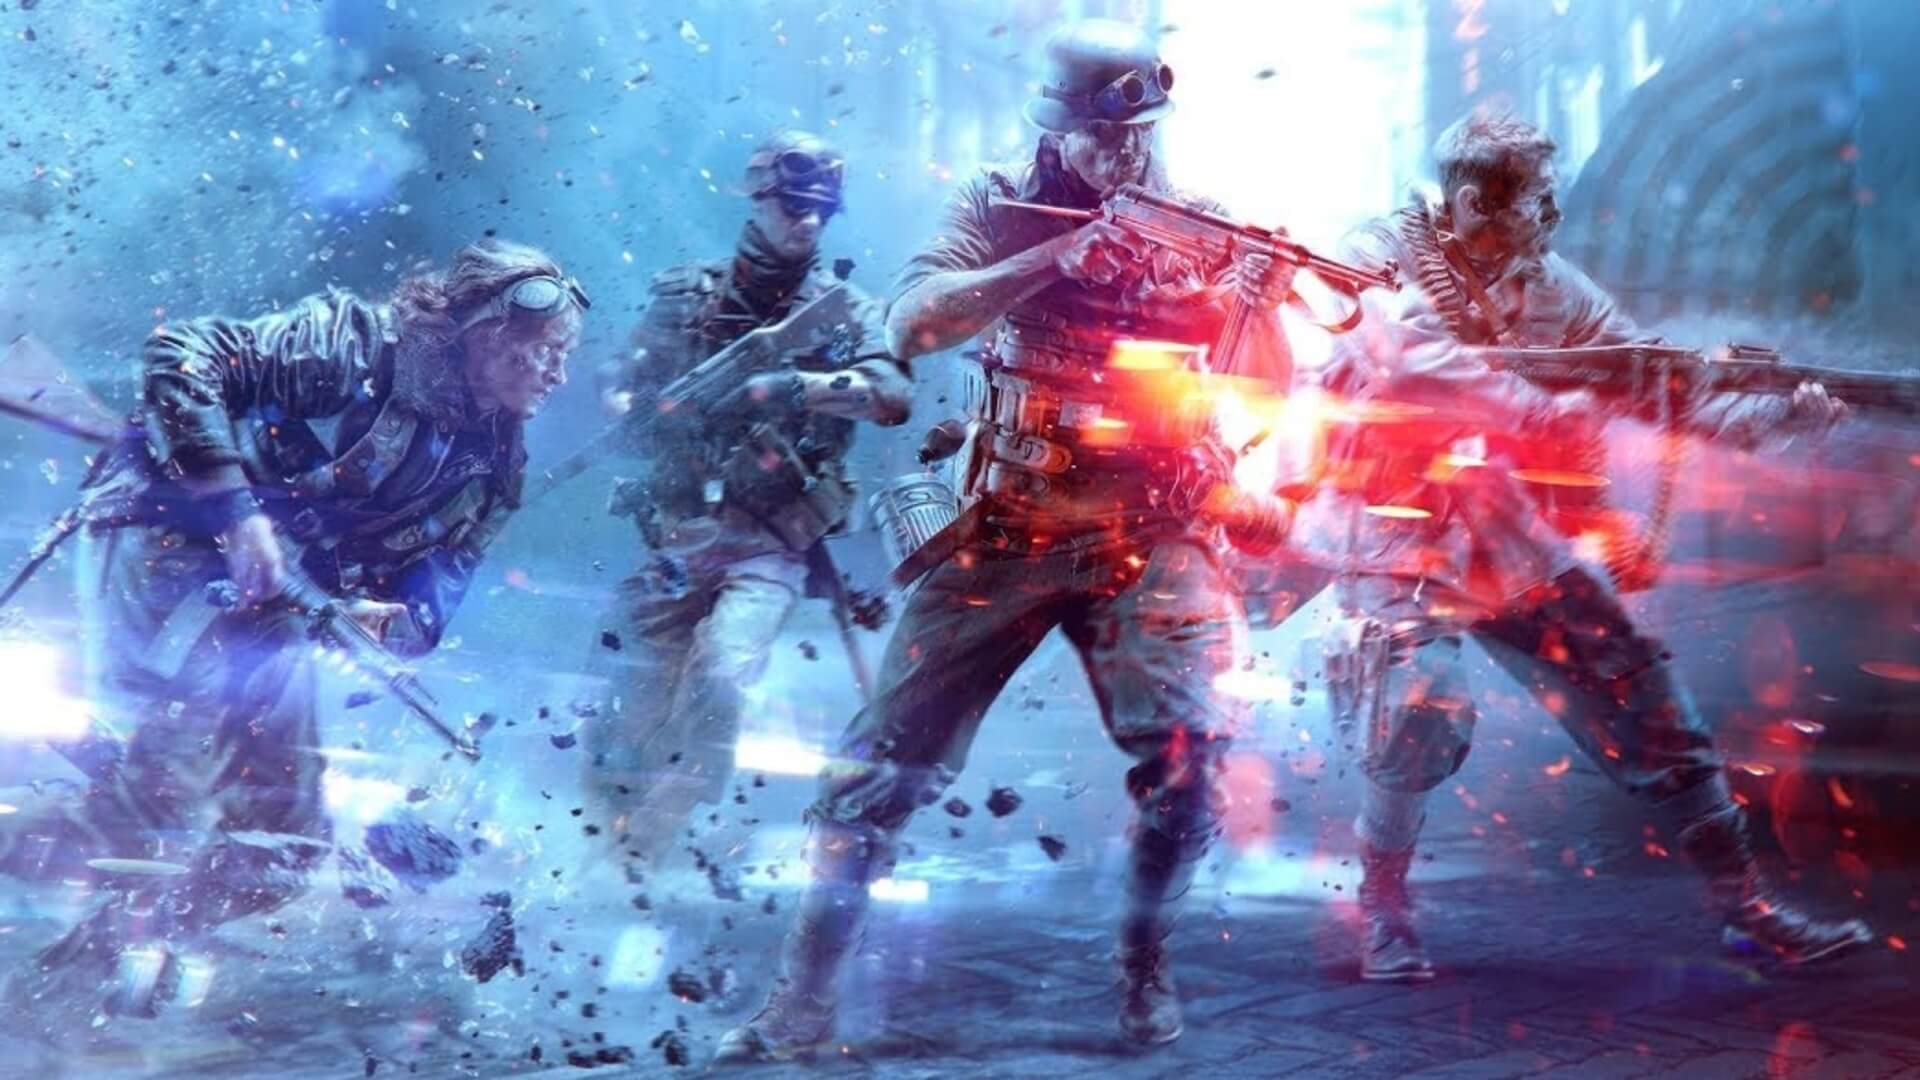 Download Battlefield 5 PC Full Game Crack for Free ...